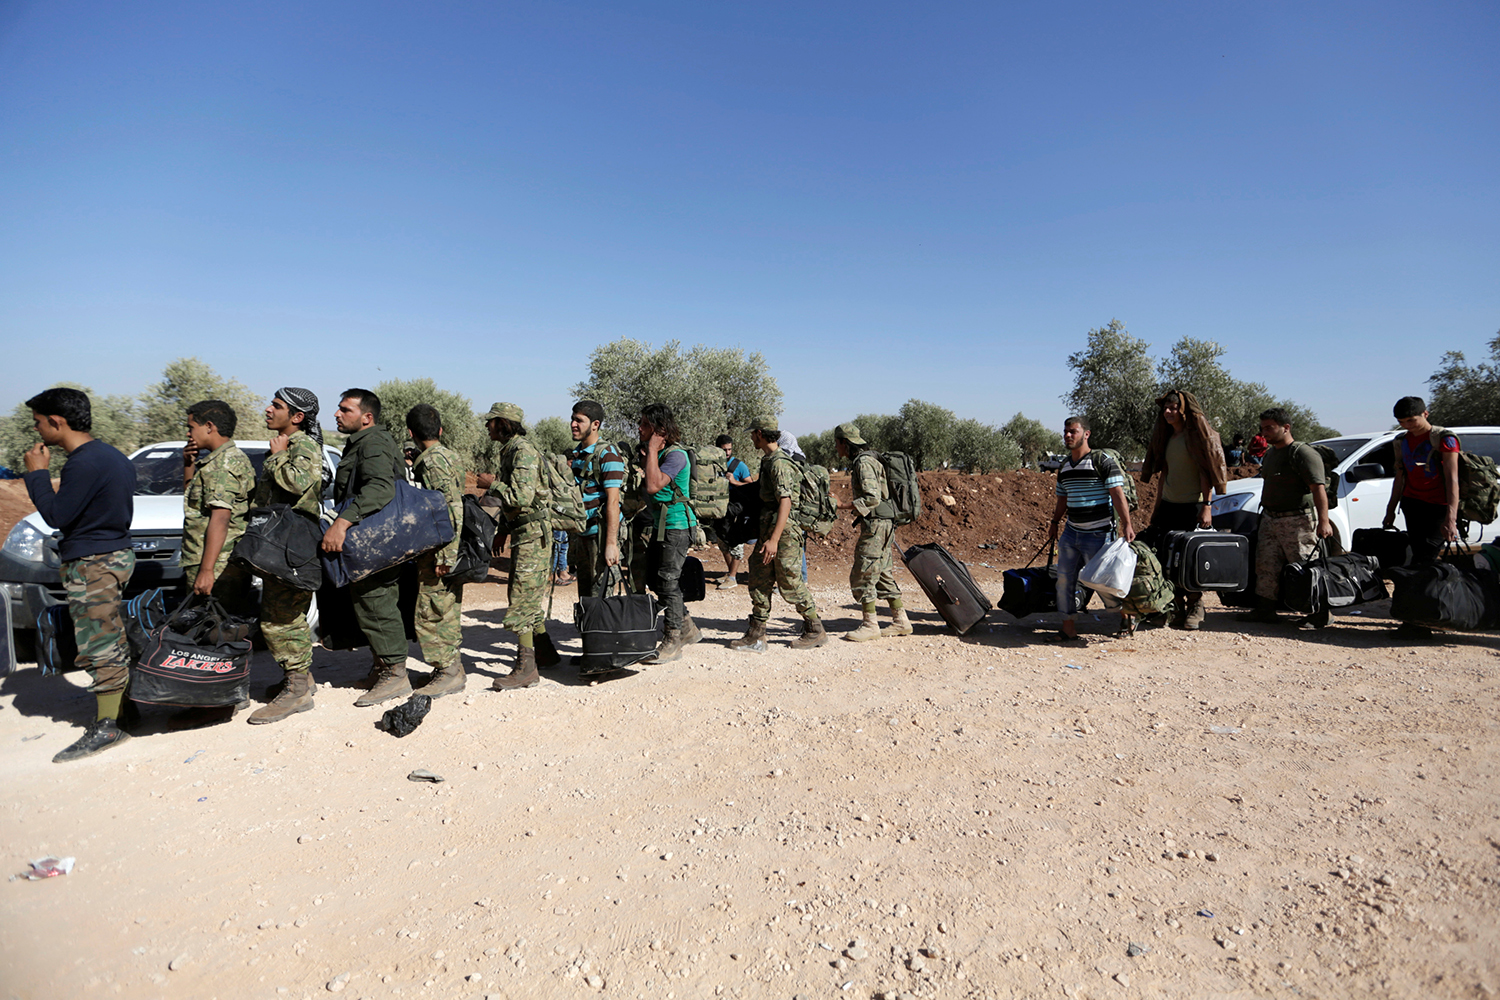 ALEPPO 2016-09-26 Free Syrian army fighters queue as they head towards their positions in the northern rural area of Aleppo, Syria, September 26, 2016. REUTERS/Khalil Ashawi Photo: / REUTERS / TT / kod 72000